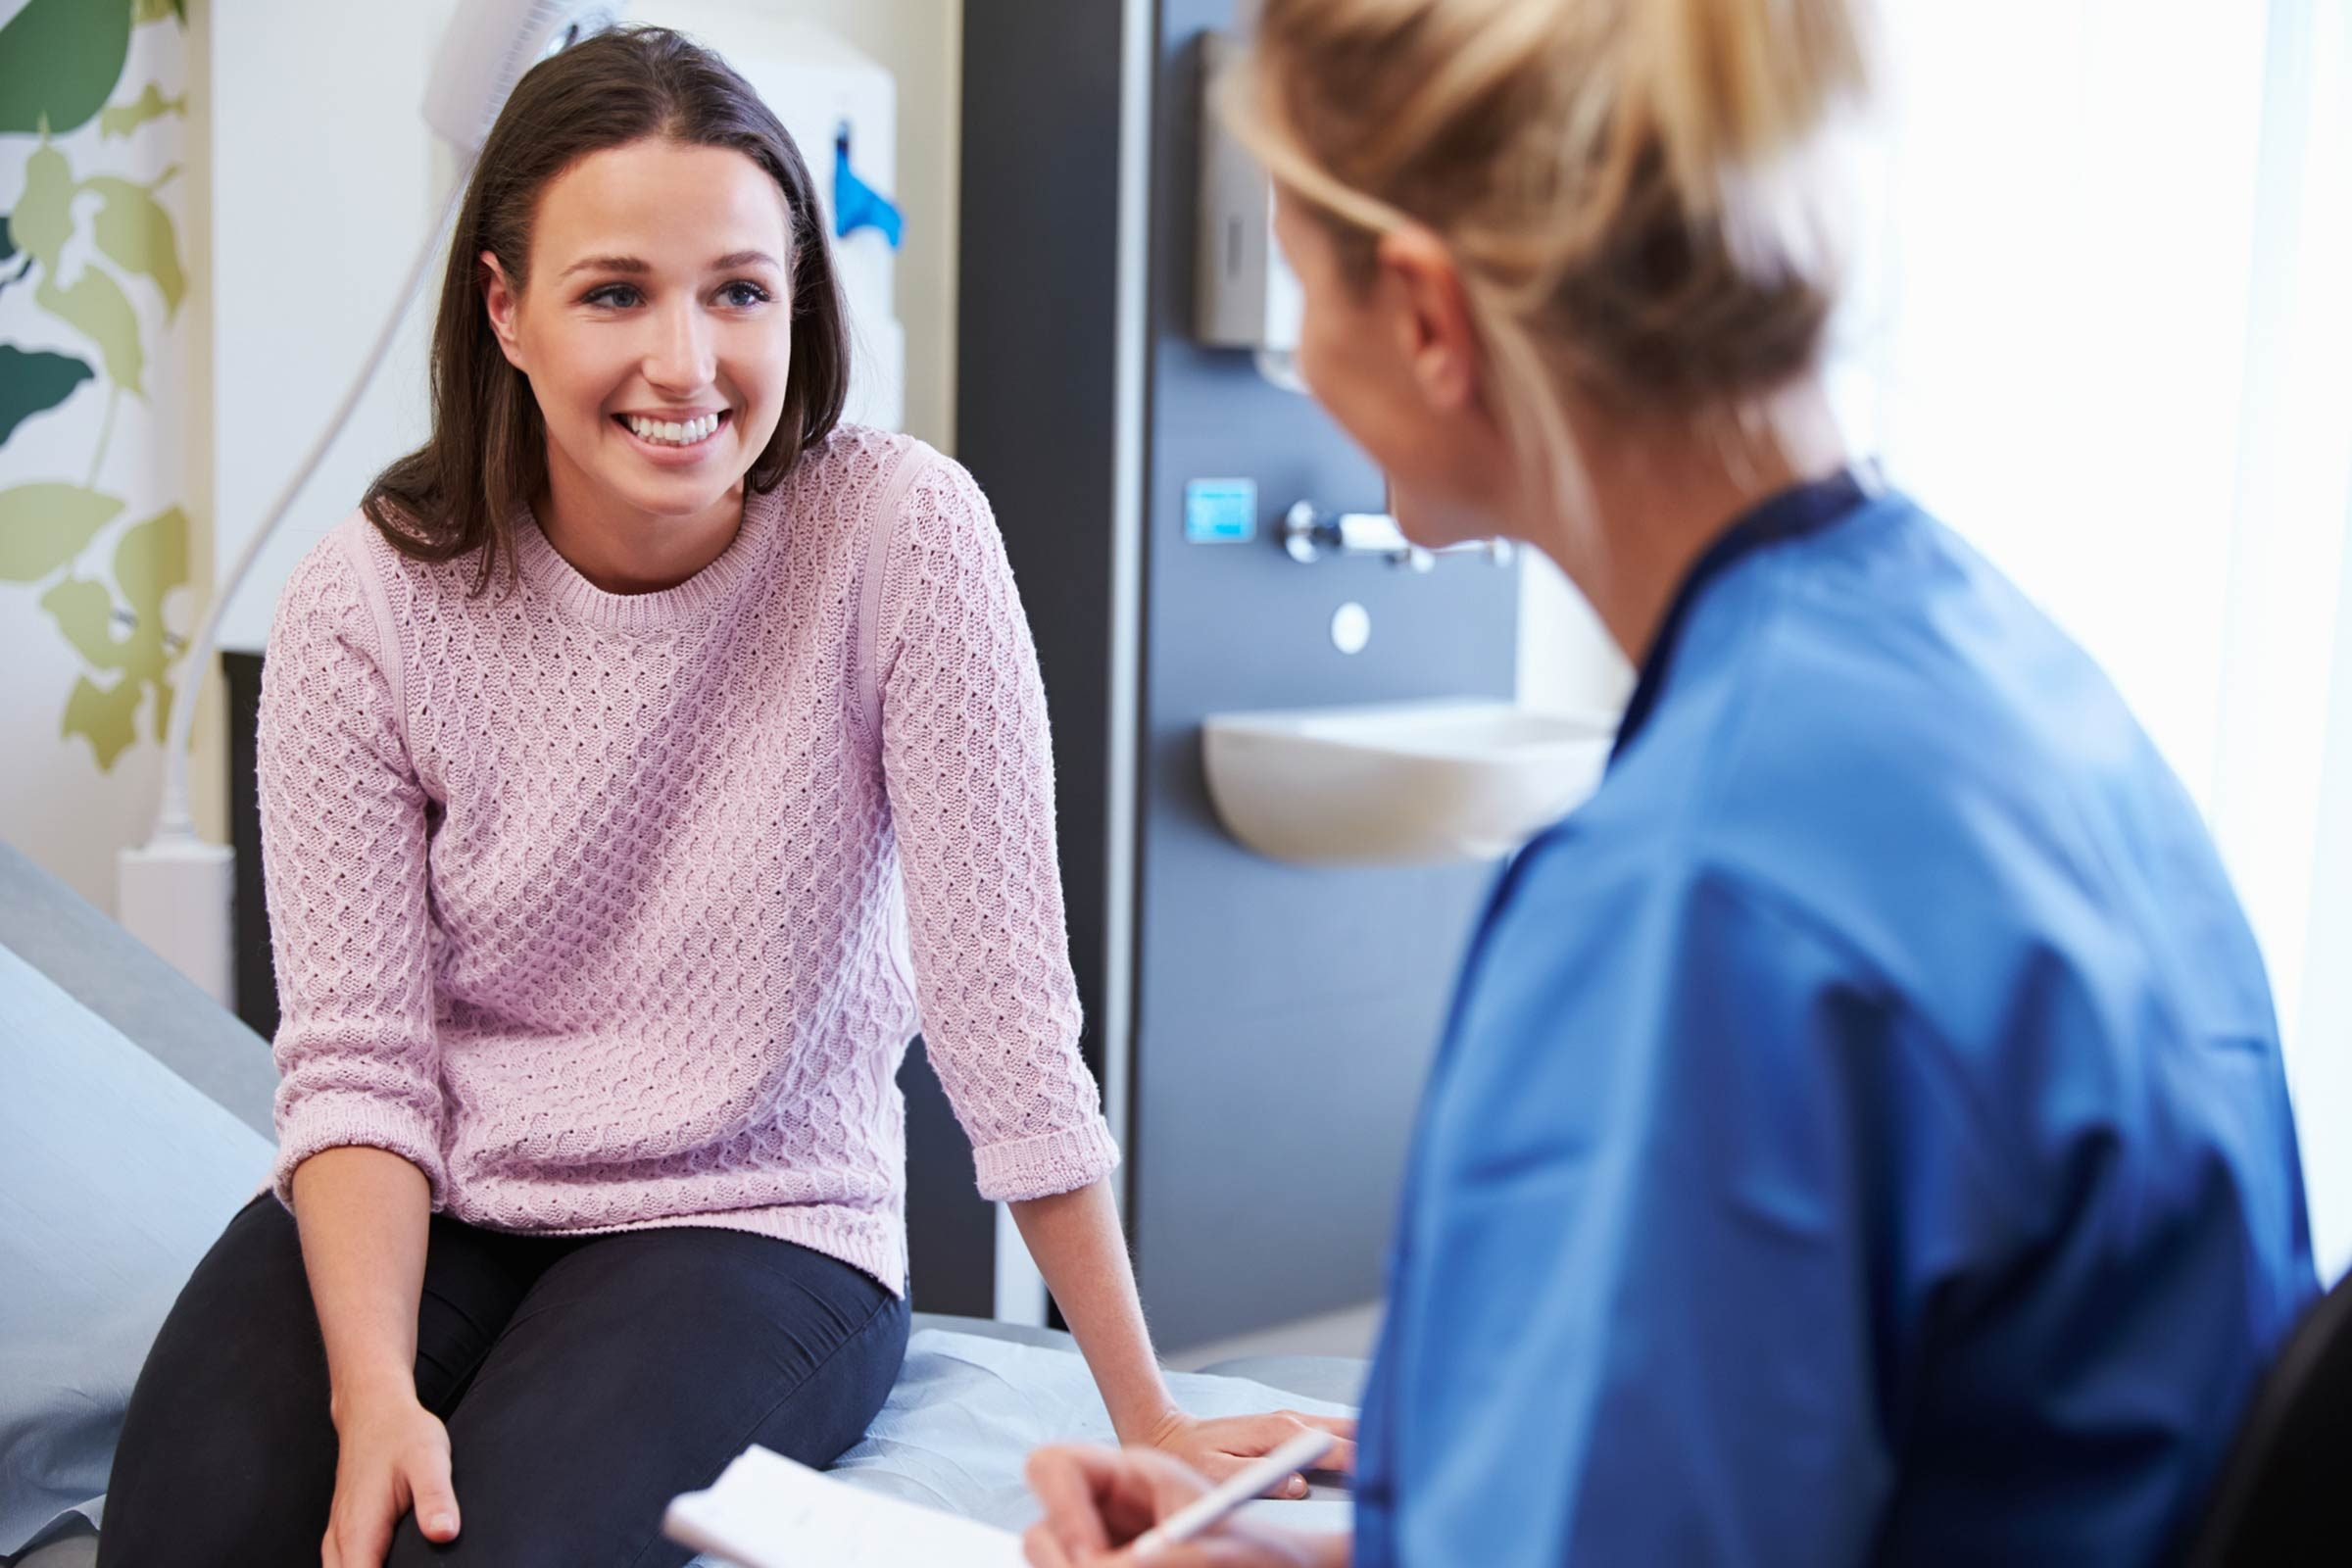 Smiling woman talking to doctor in office.